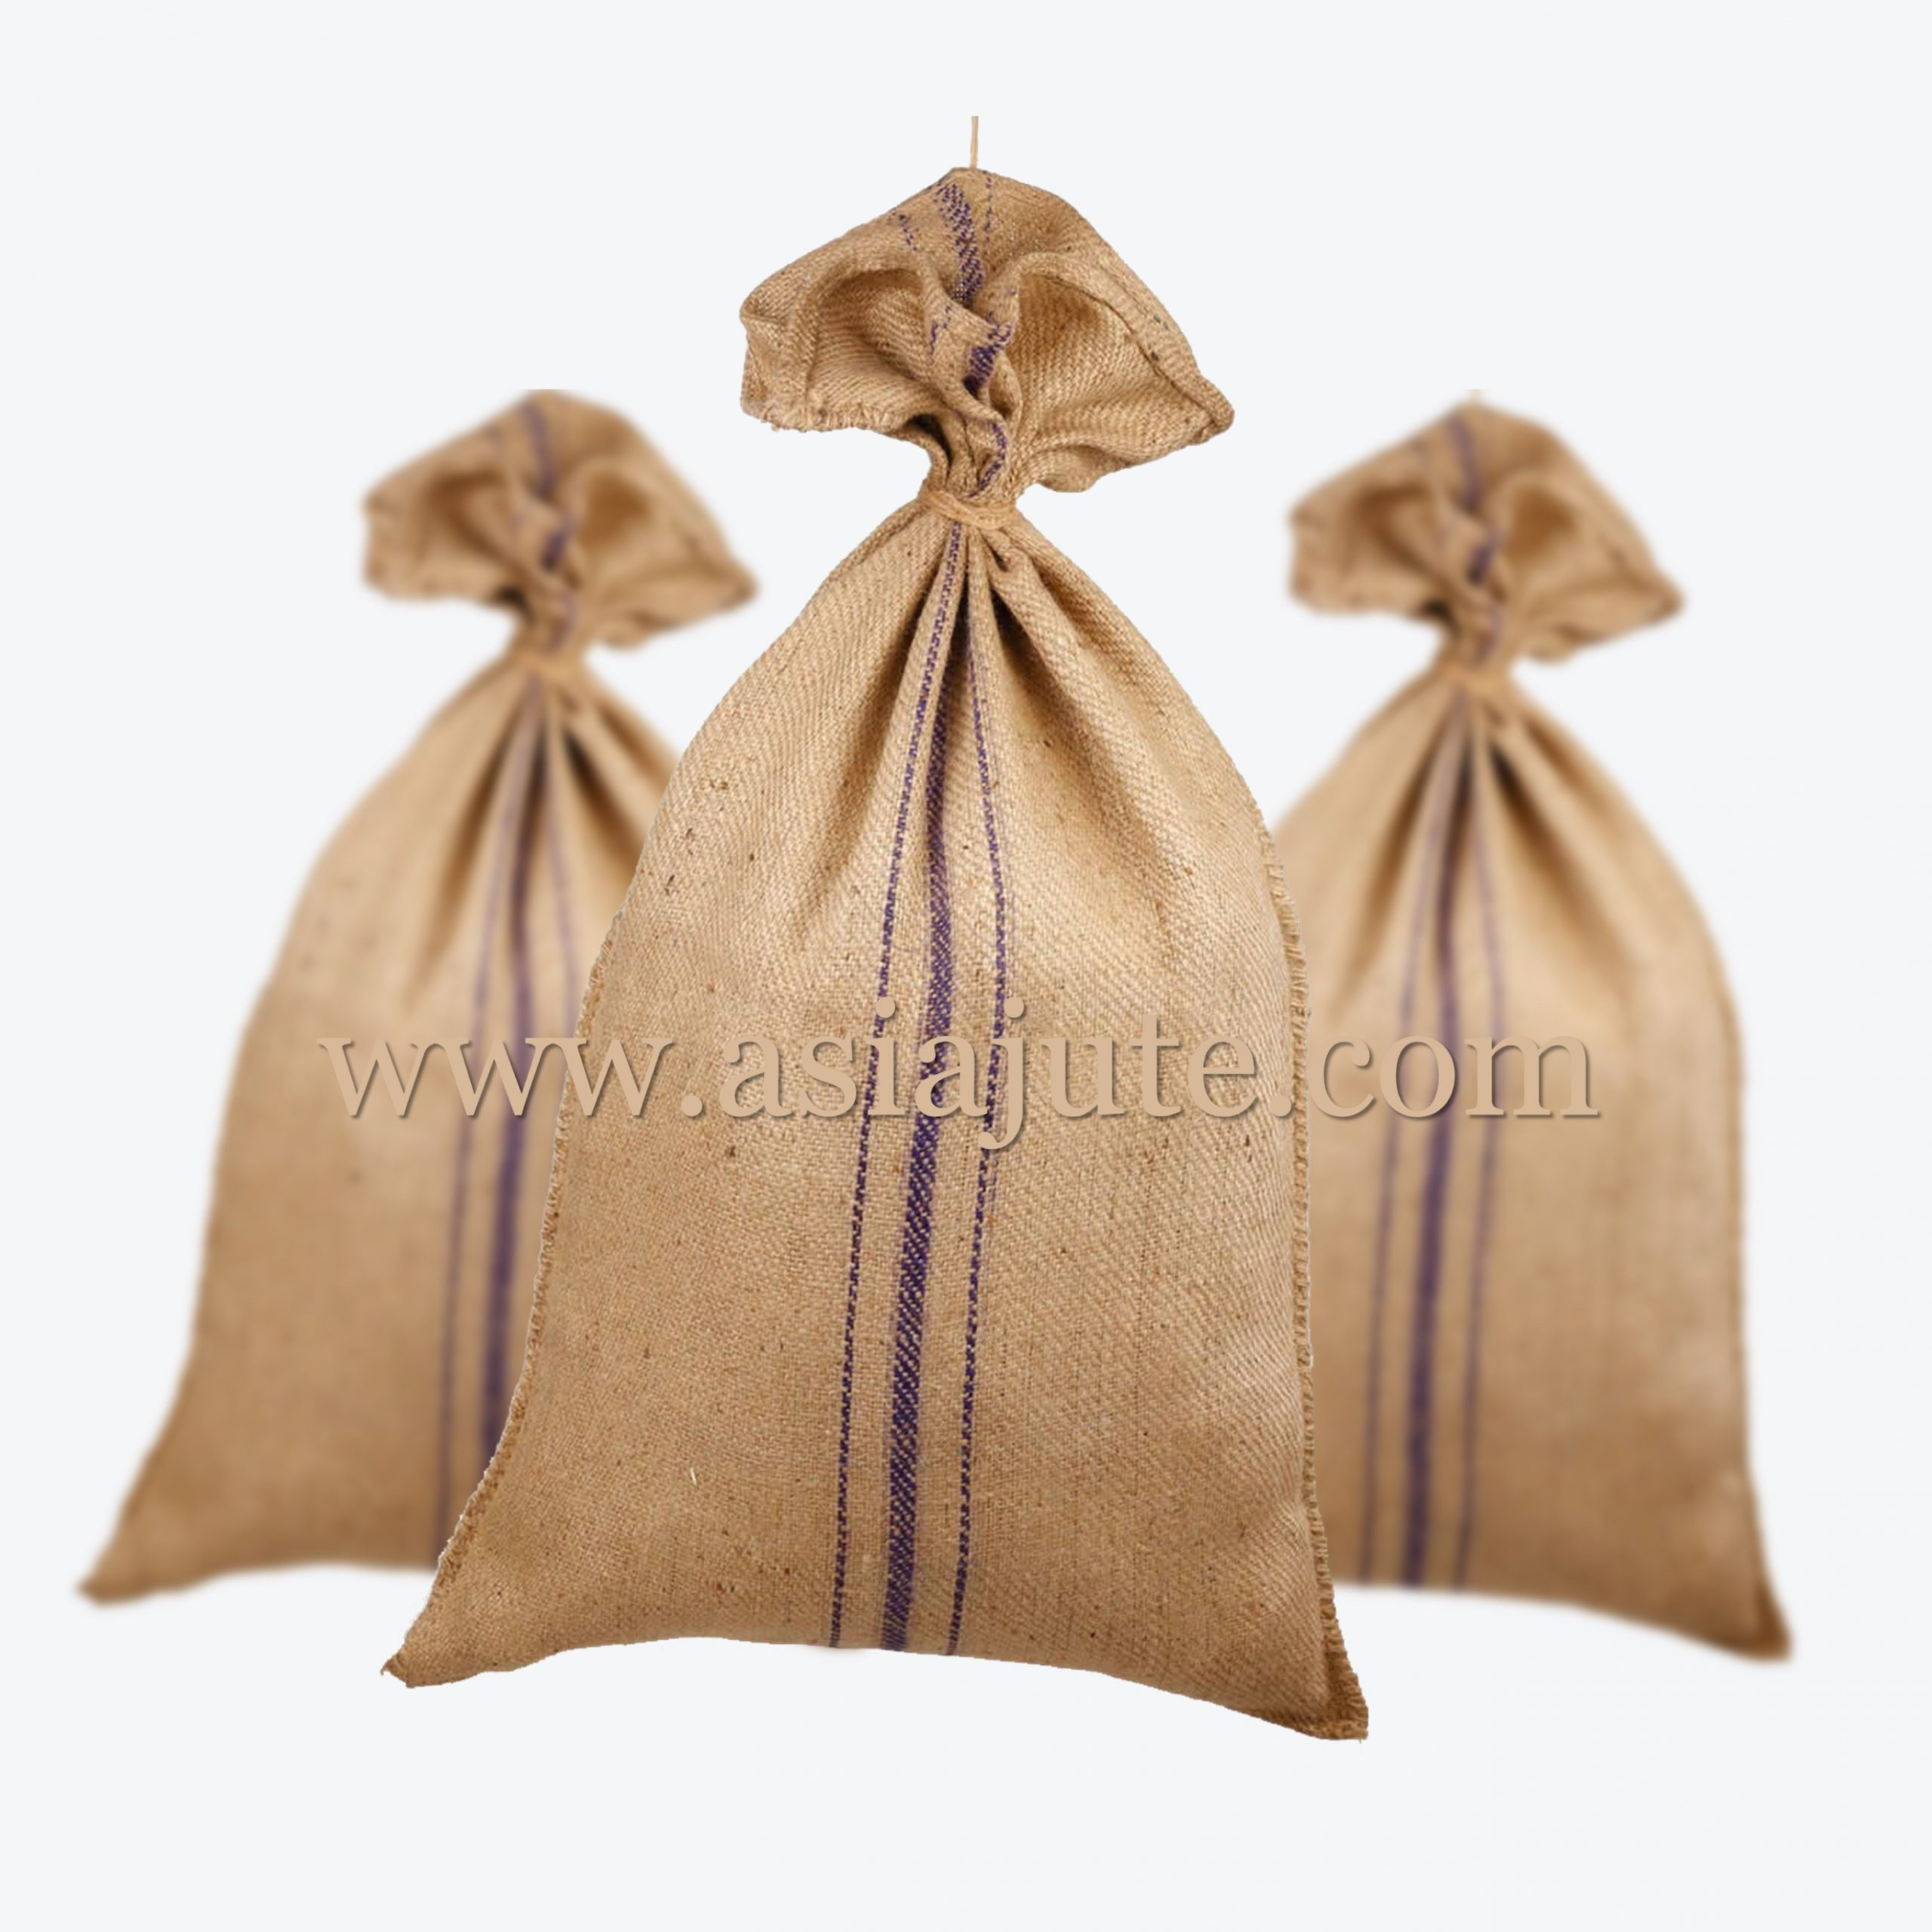 VOT B-Twill Jute Sack Bag Manufacturer Exporter and Wholesale Bangladesh Jute Bag Supplier